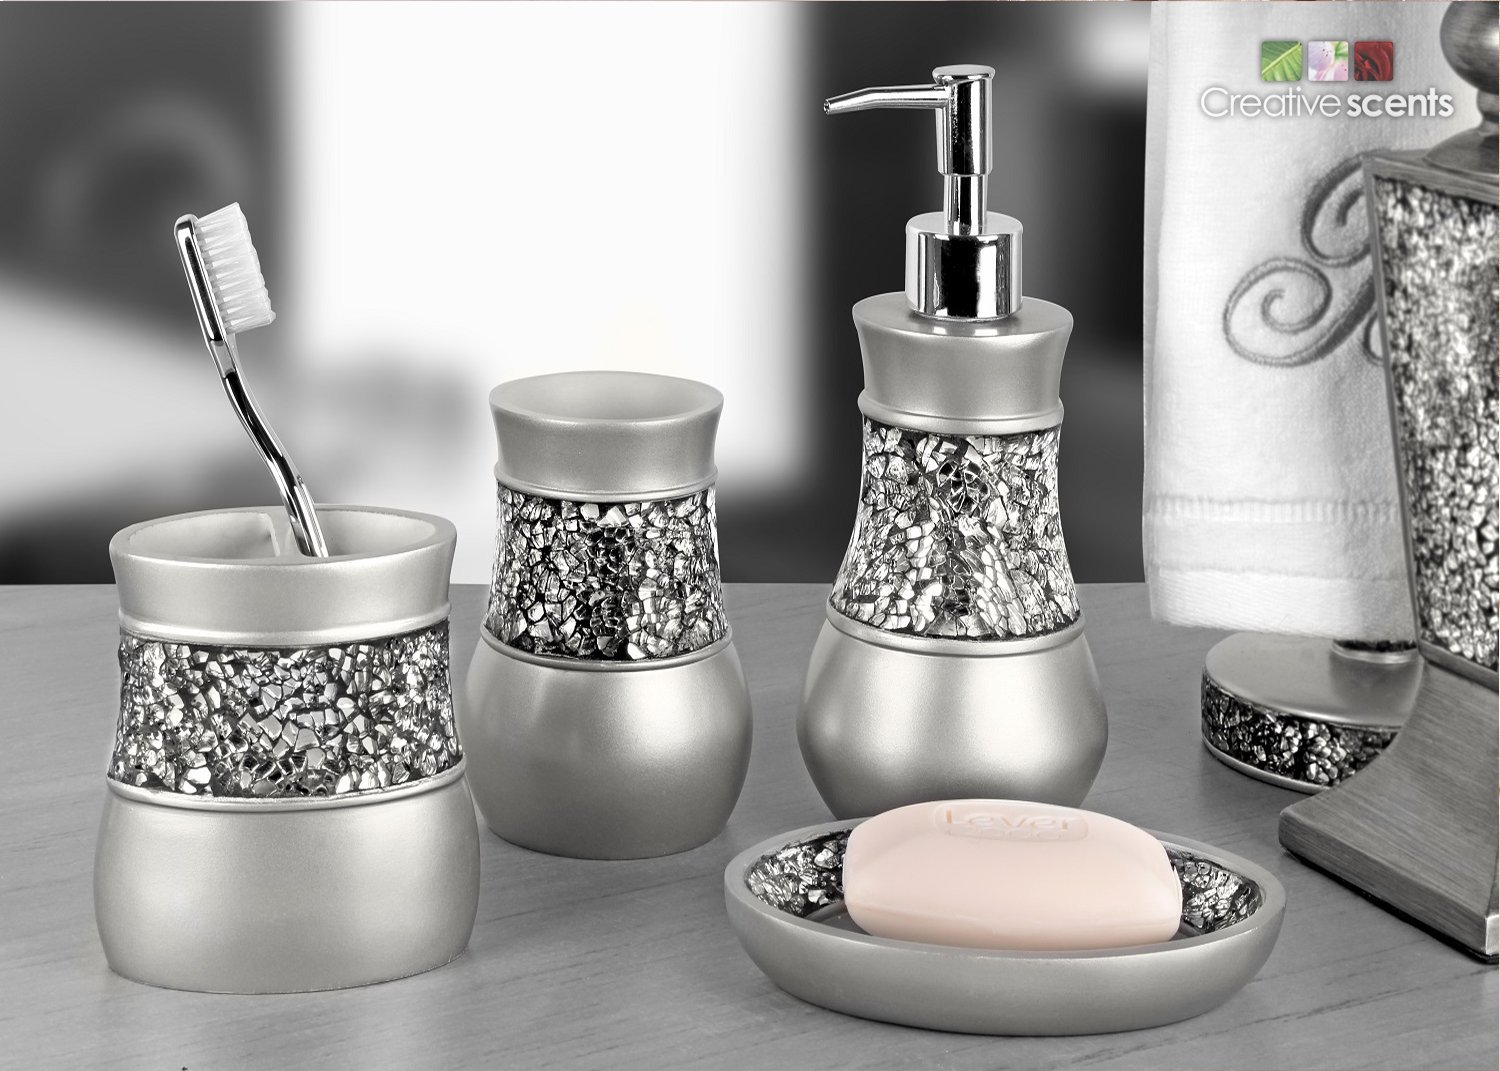 Marvelous Amazon.com: Creative Scents Brushed Nickel Bathroom Accessories Set, 4  Piece Bath Ensemble, Bath Set Collection Features Soap Dispenser Pump, ...